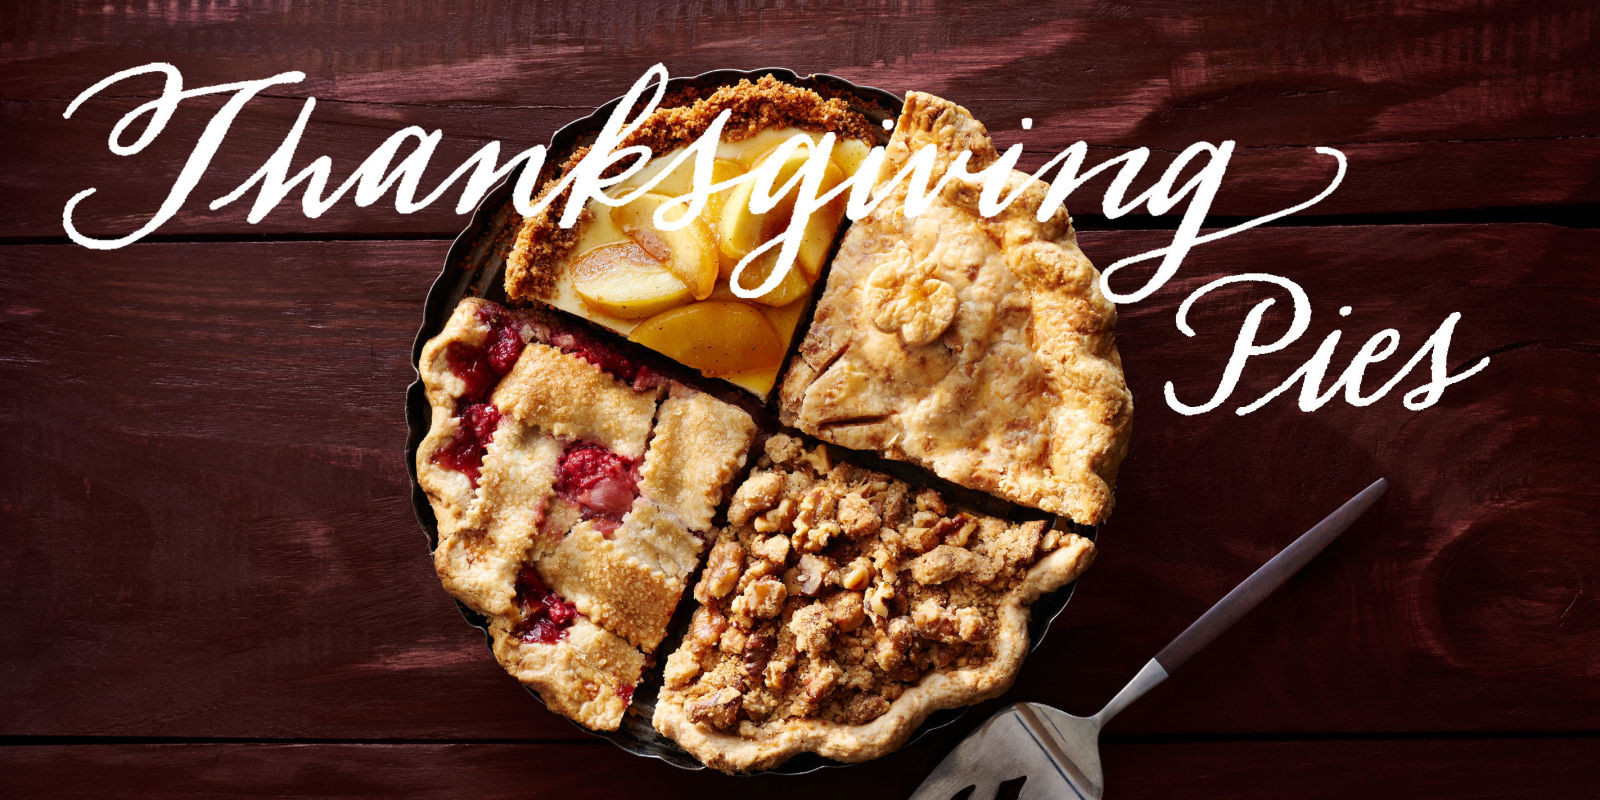 Best Thanksgiving Pies Recipes  38 Best Thanksgiving Pies Recipes and Ideas for